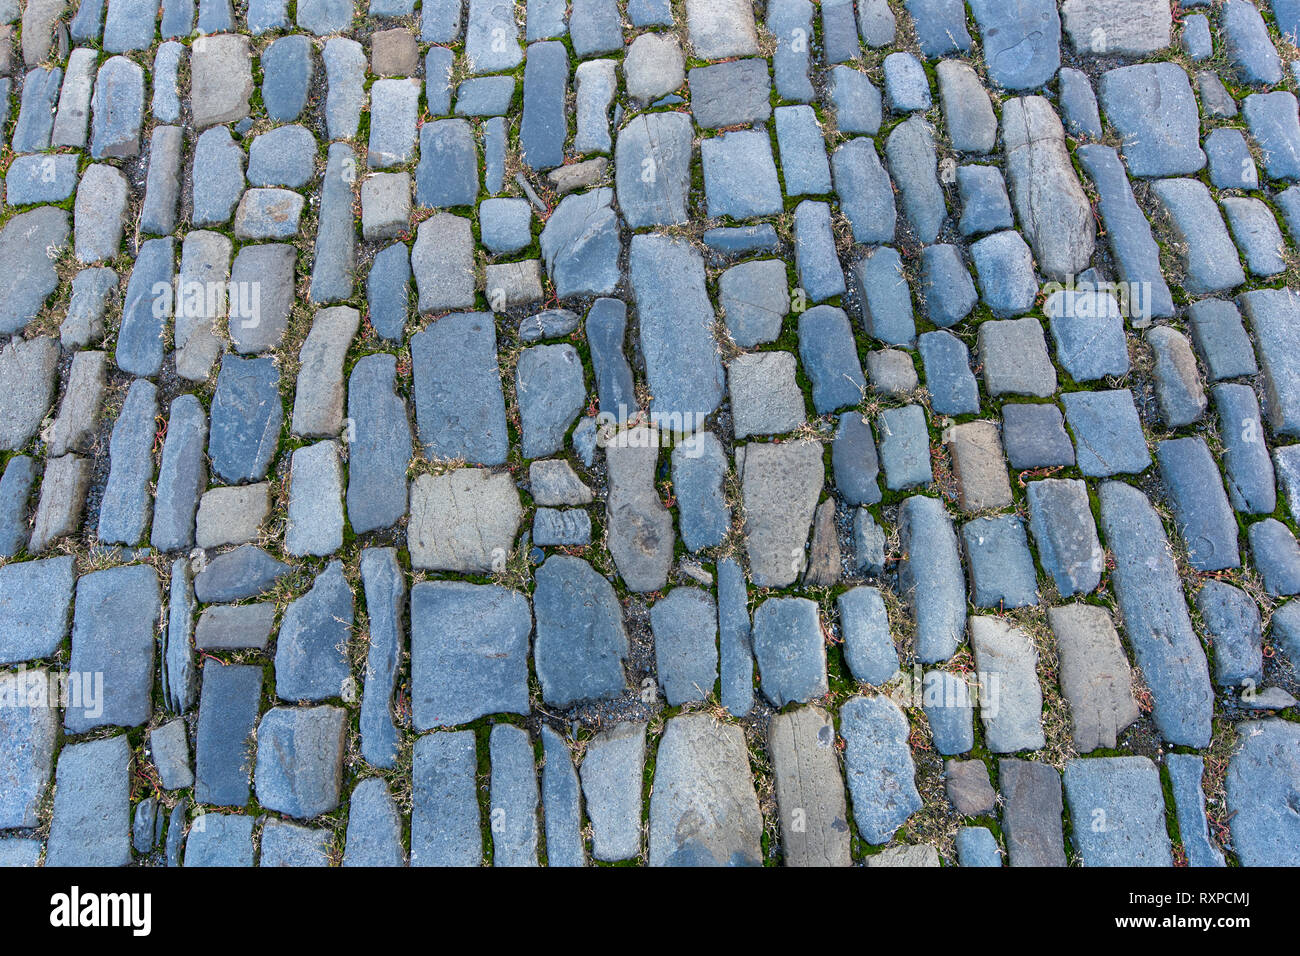 the medieval road is paved with cobblestones with grass between them - Stock Image